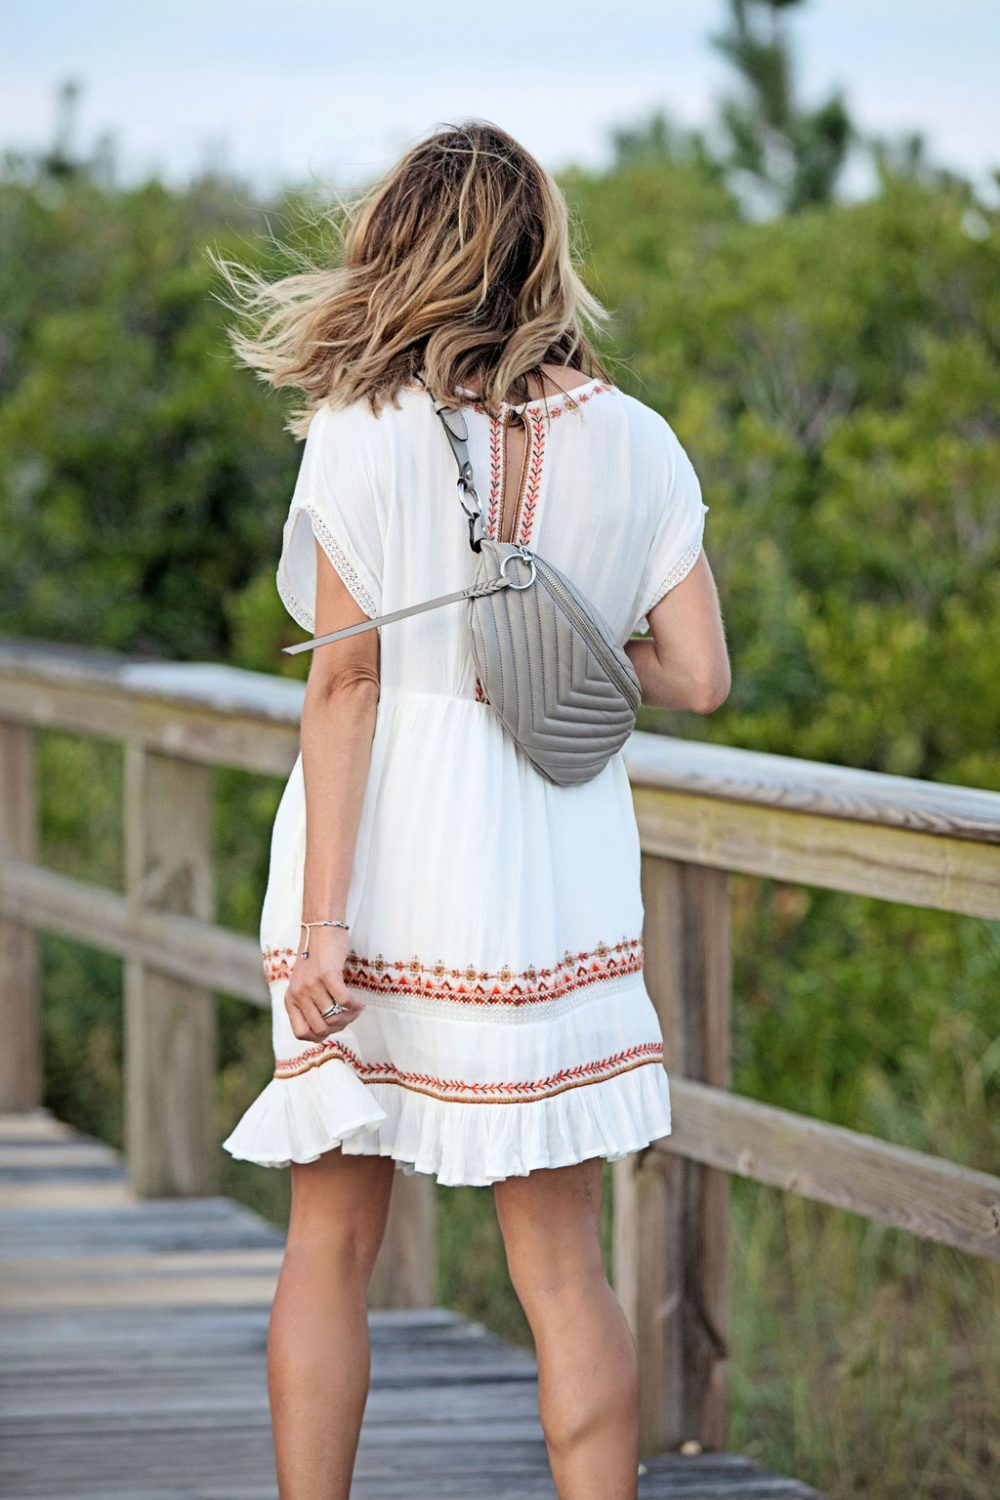 The Motherchic wearing free people dress and Rebecca Minkoff belt bag